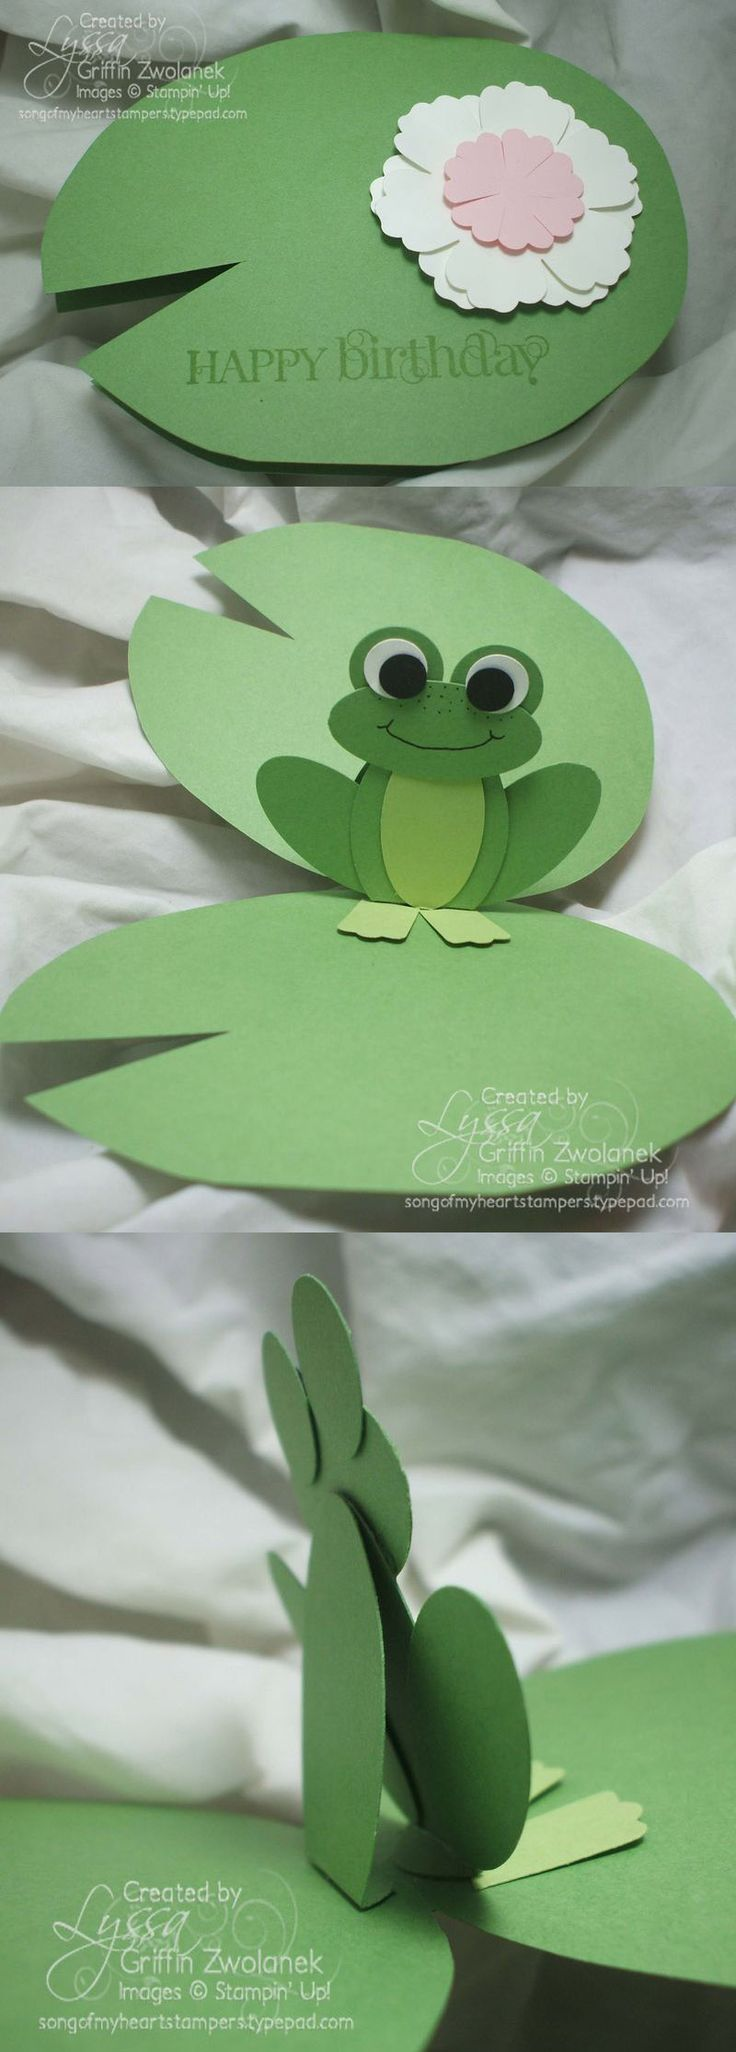 Lily pad & pop up frog card - way cute! Must try...